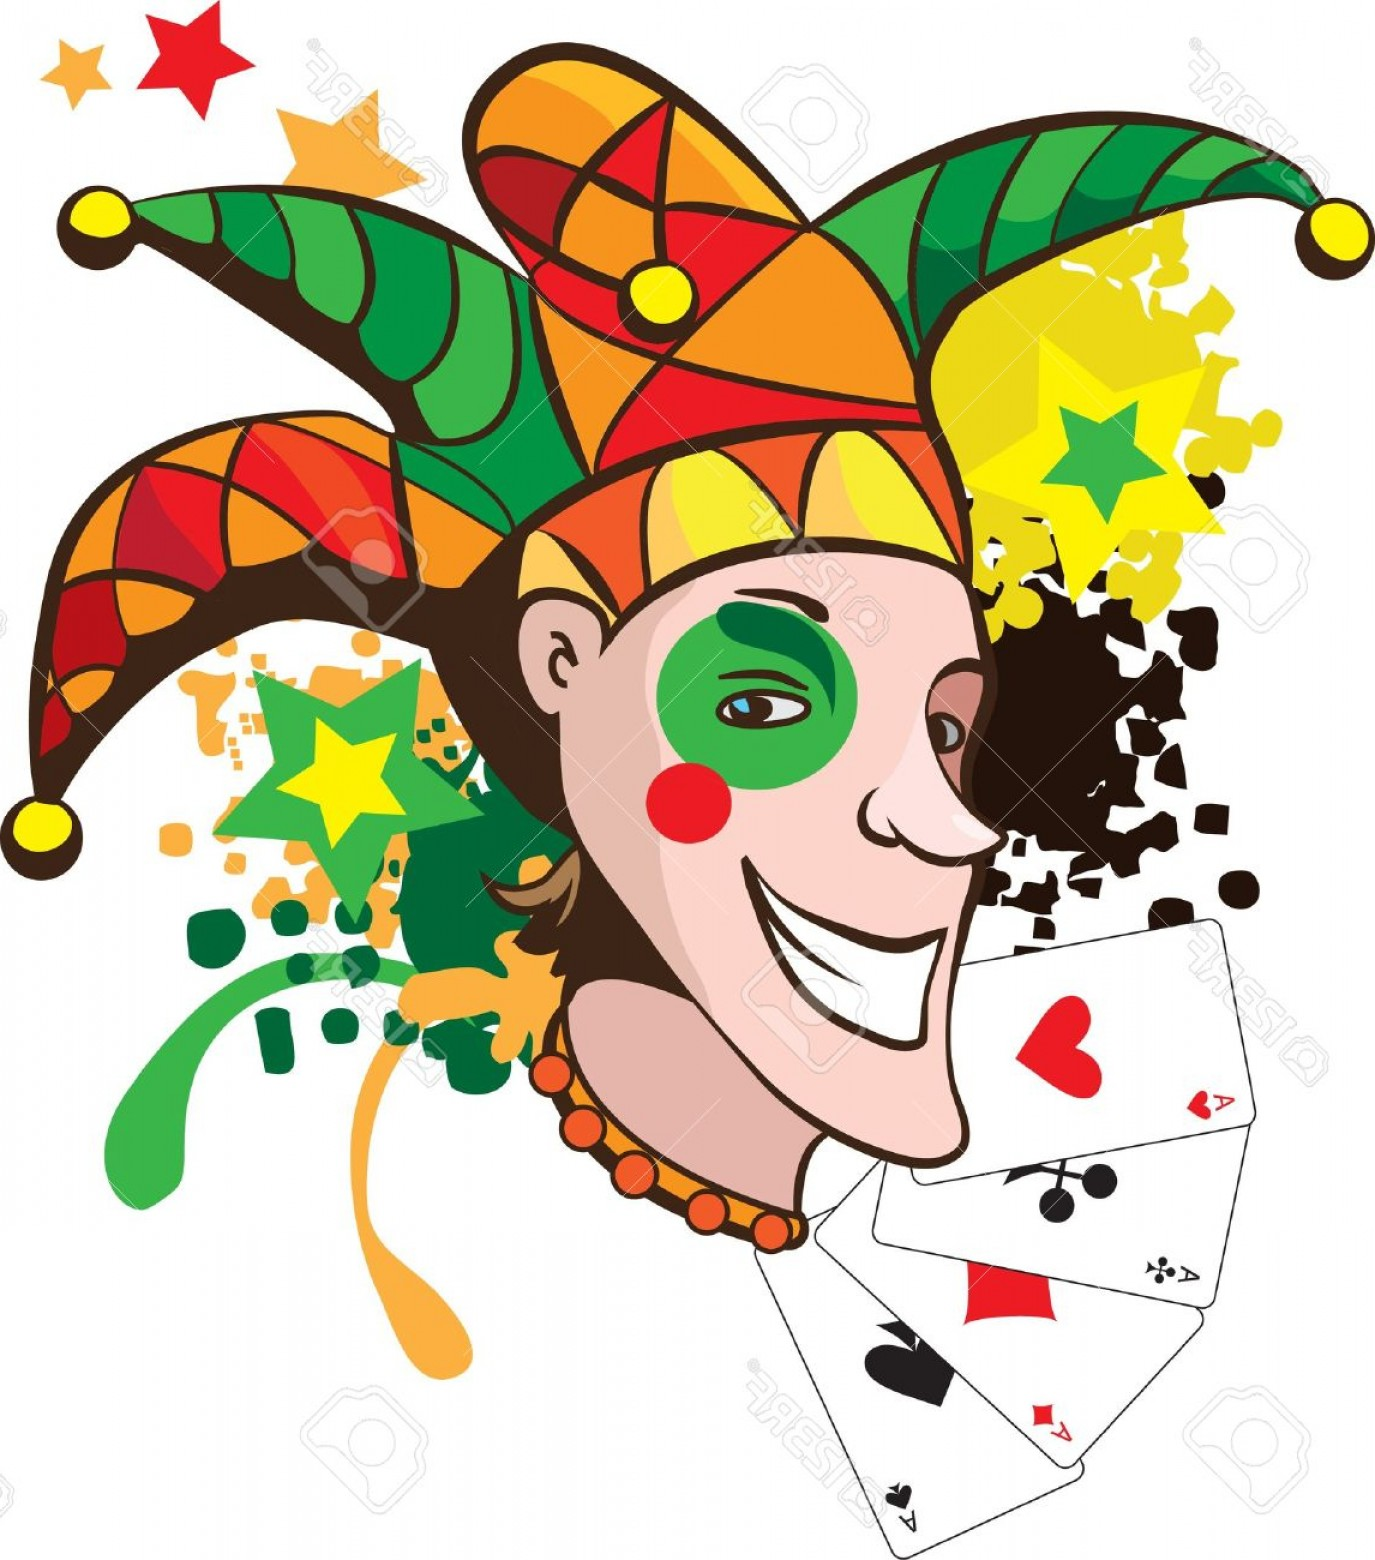 Joker Smile Vector Art: Photosmiling Joker With Cards And Stars Vector Illustration